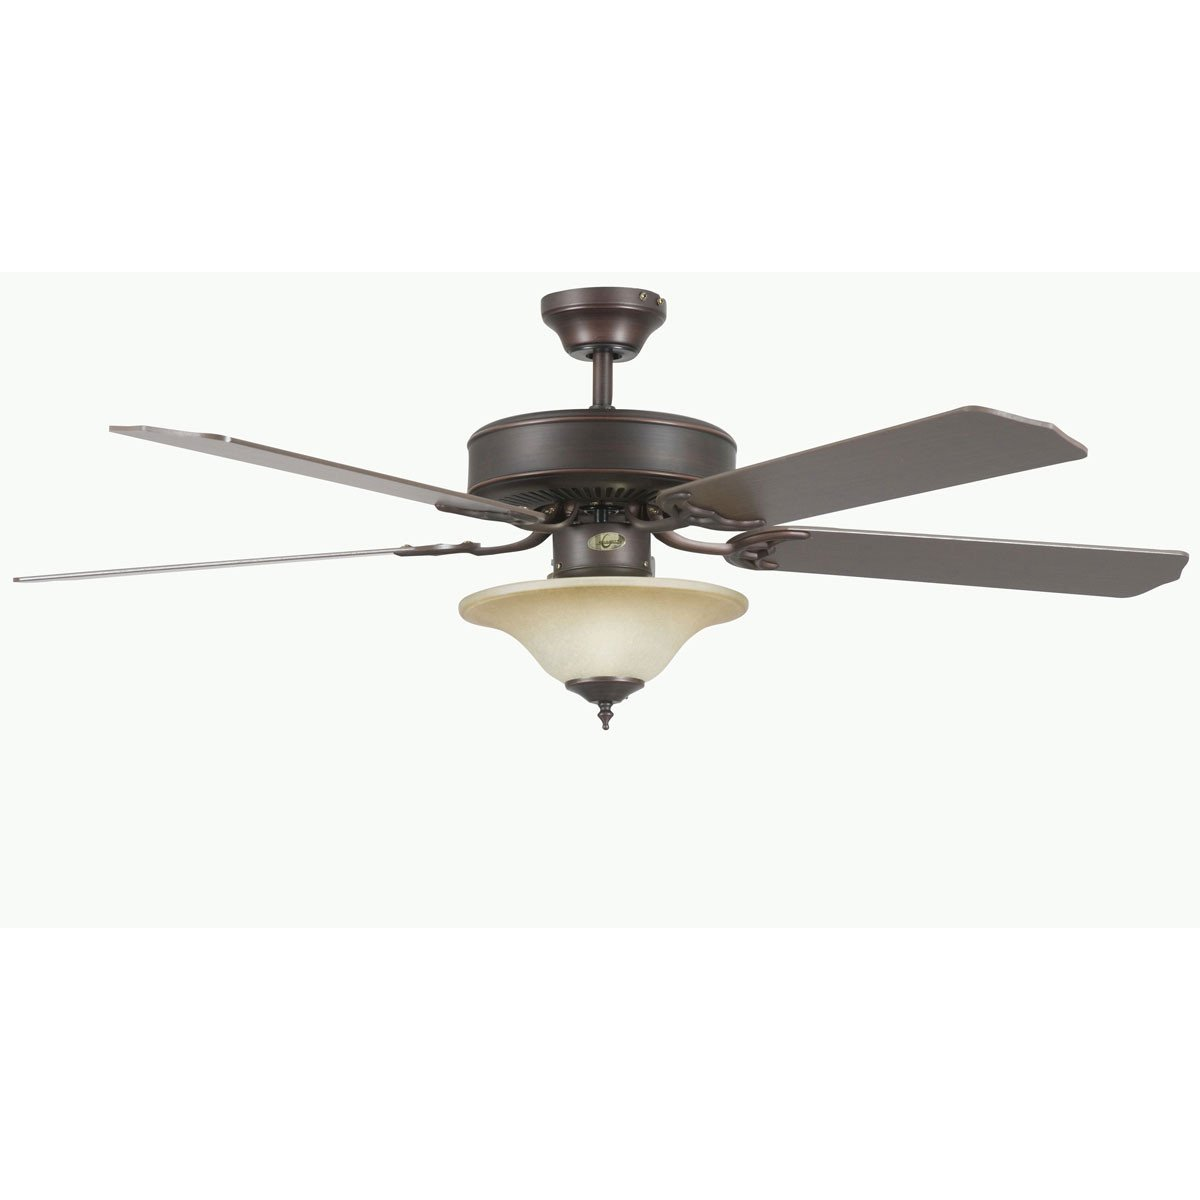 "Concord Fans 52"" Heritage Square Oil Rubbed Bronze Ceiling Fan with Light Kit"